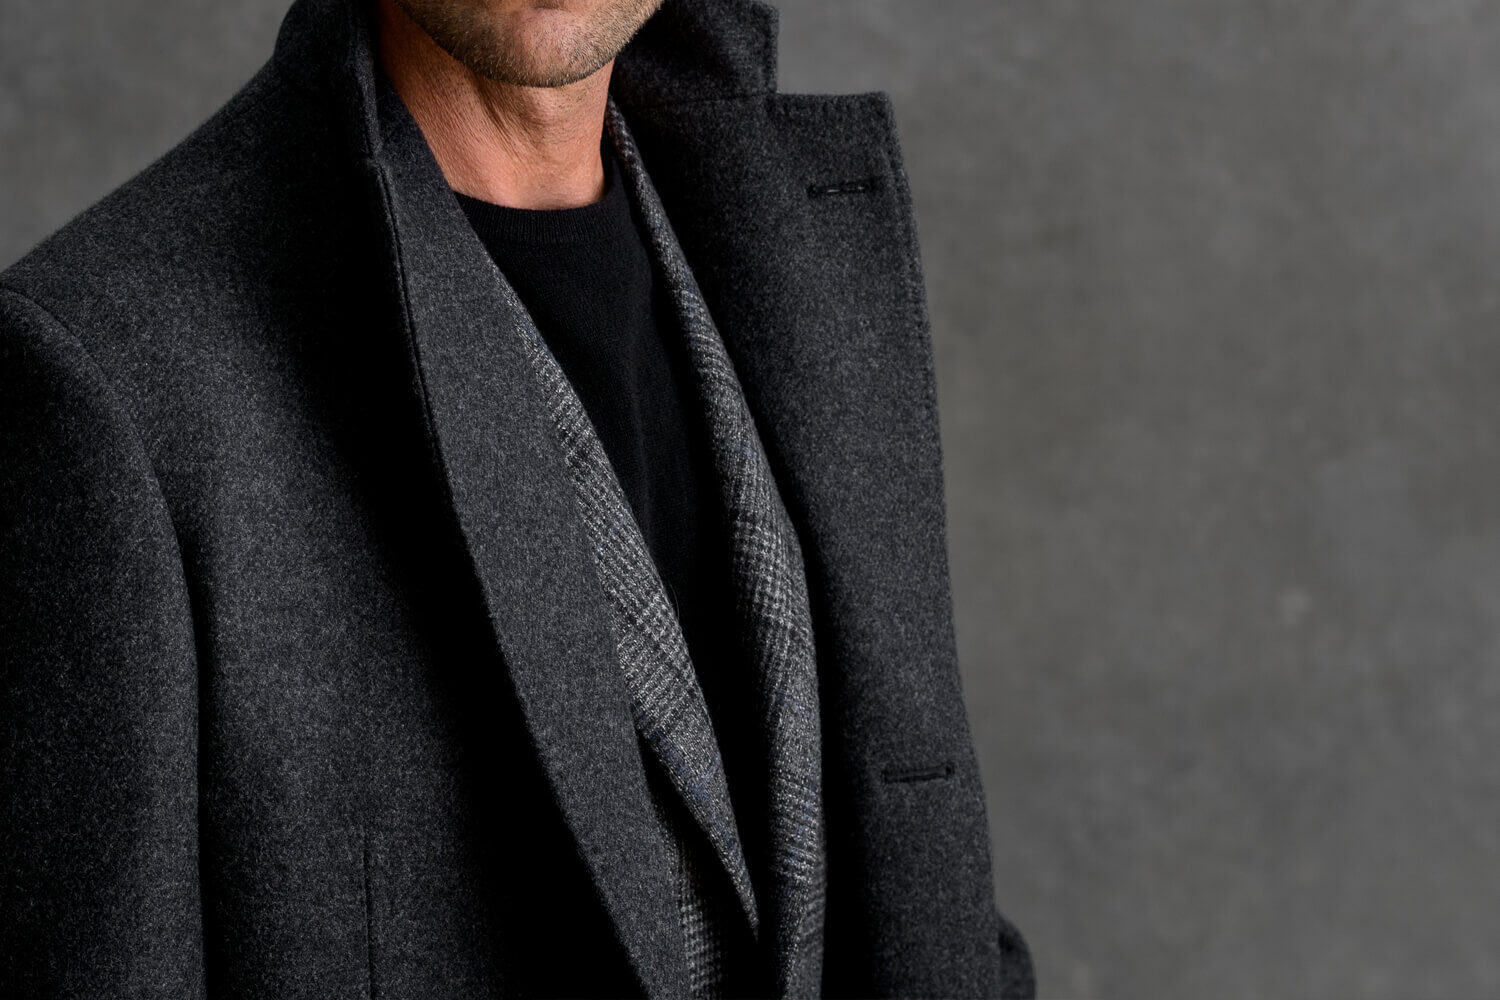 Look: The Unstructured Overcoat Zoomed